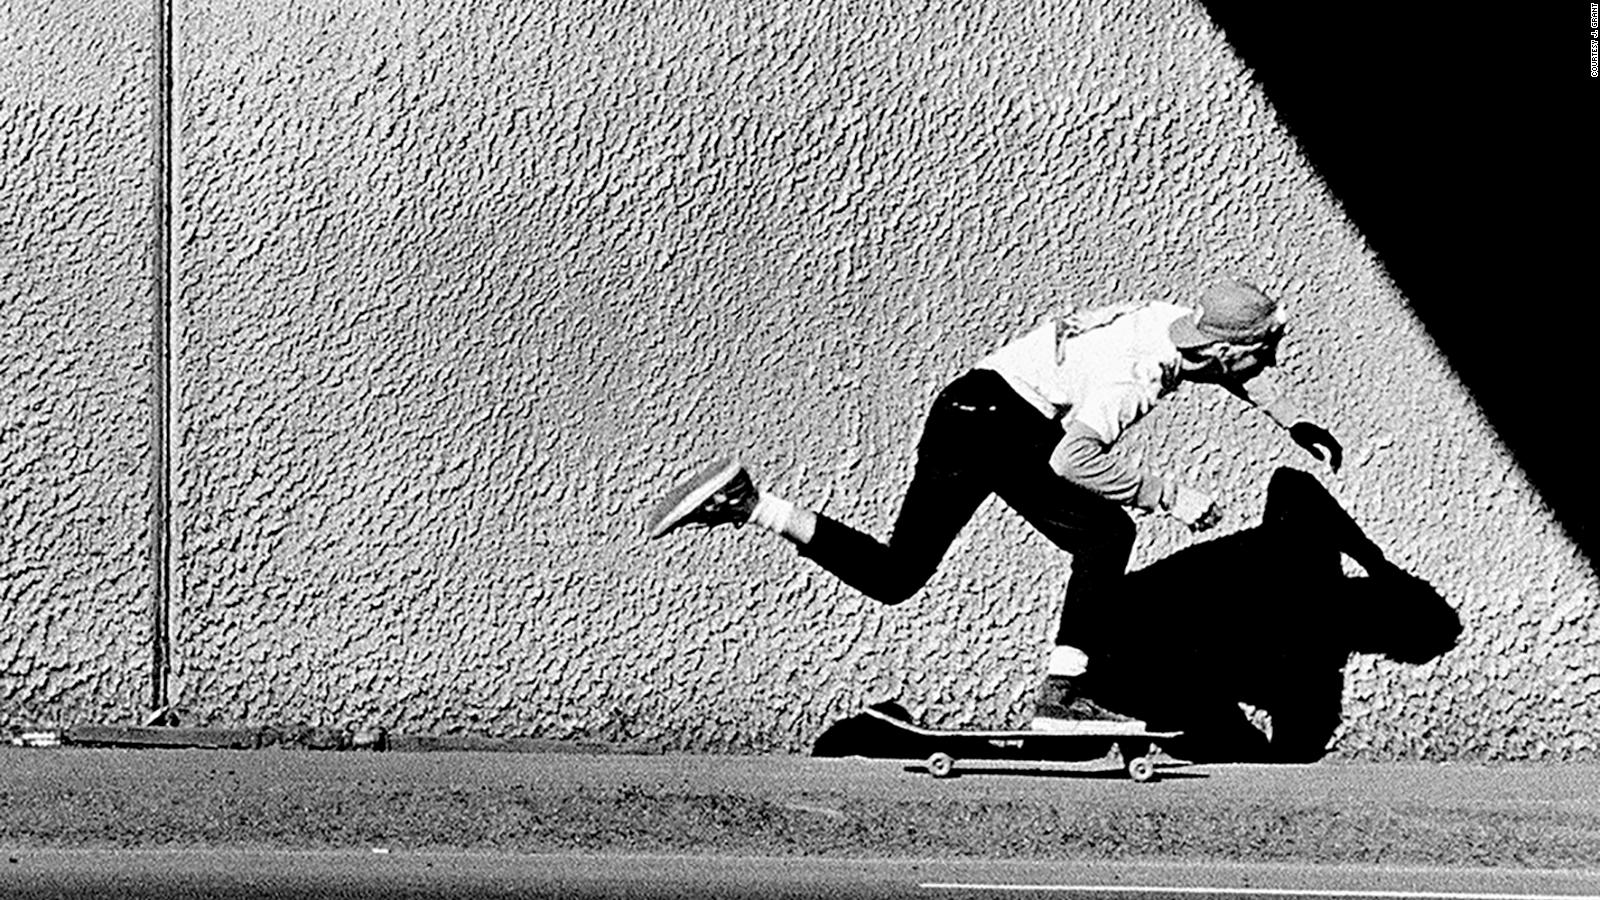 How Photographers Have Captured Skateboarding Through Generations